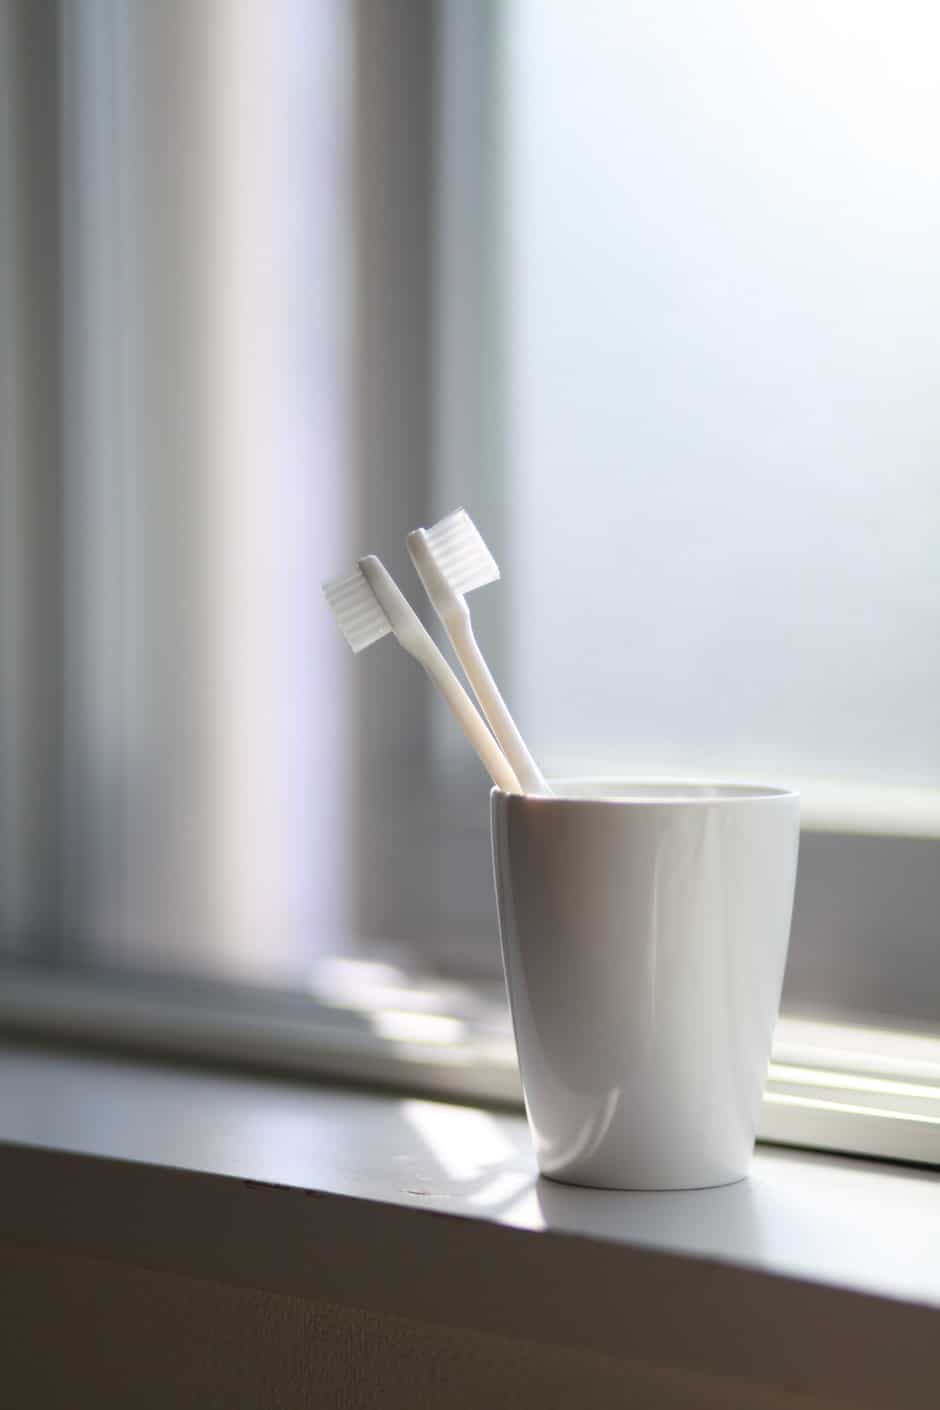 Two White Toothbrush Inside the White Ceramic Cup